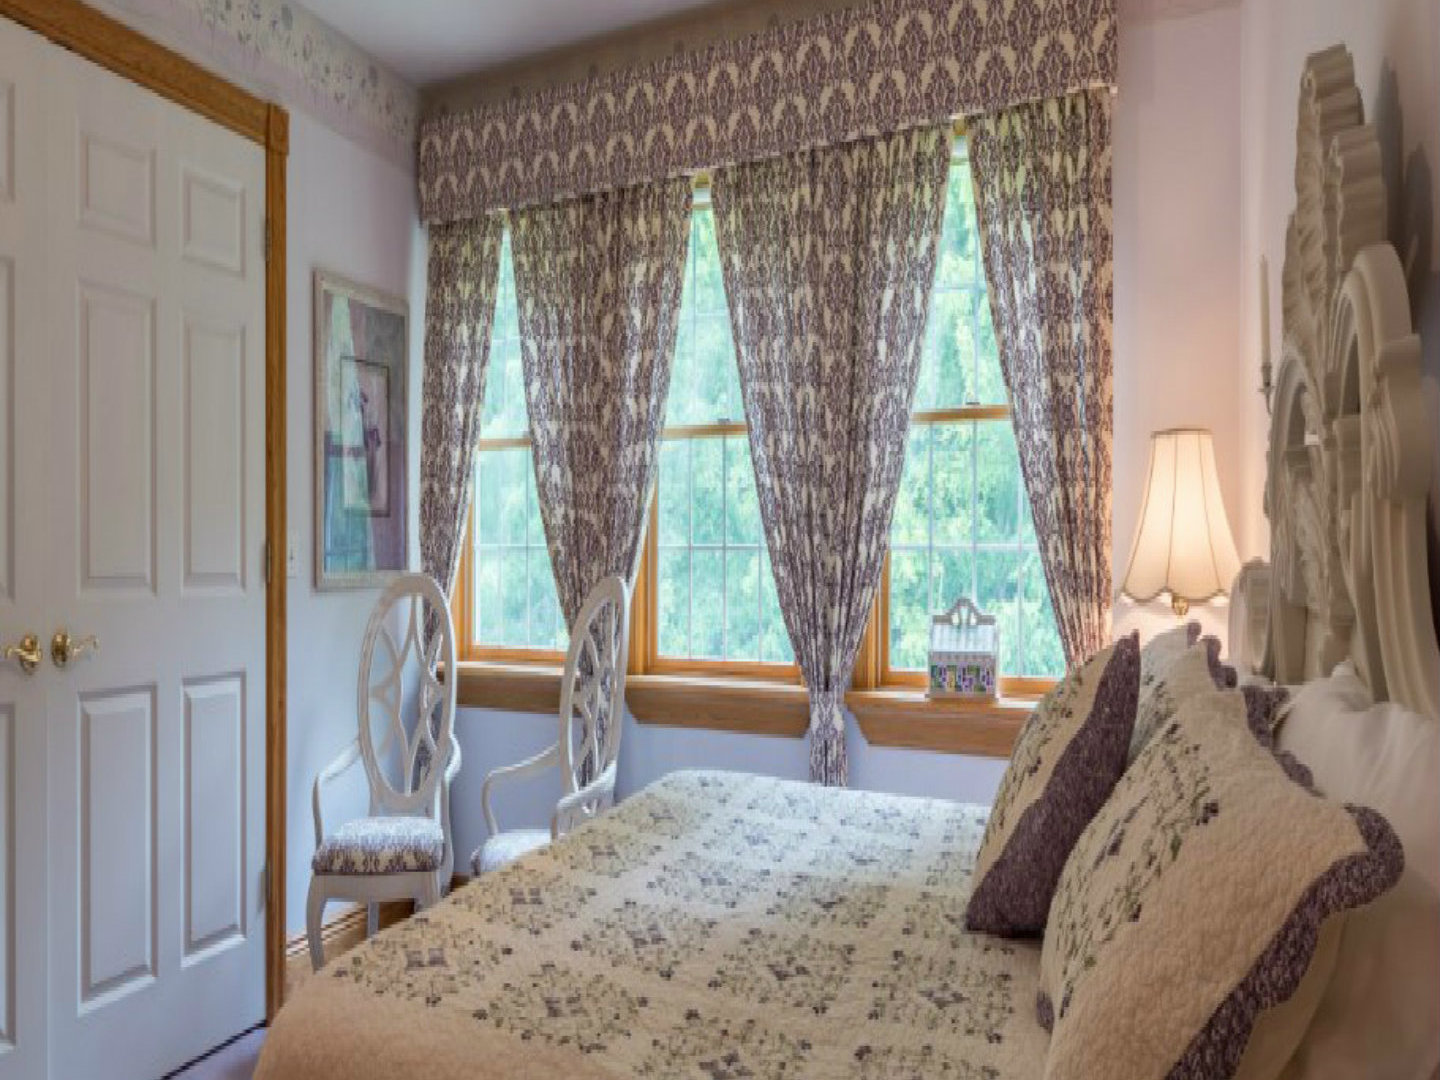 A bedroom with a bed and a window at Bear Creek Farm Bed and Breakfast .